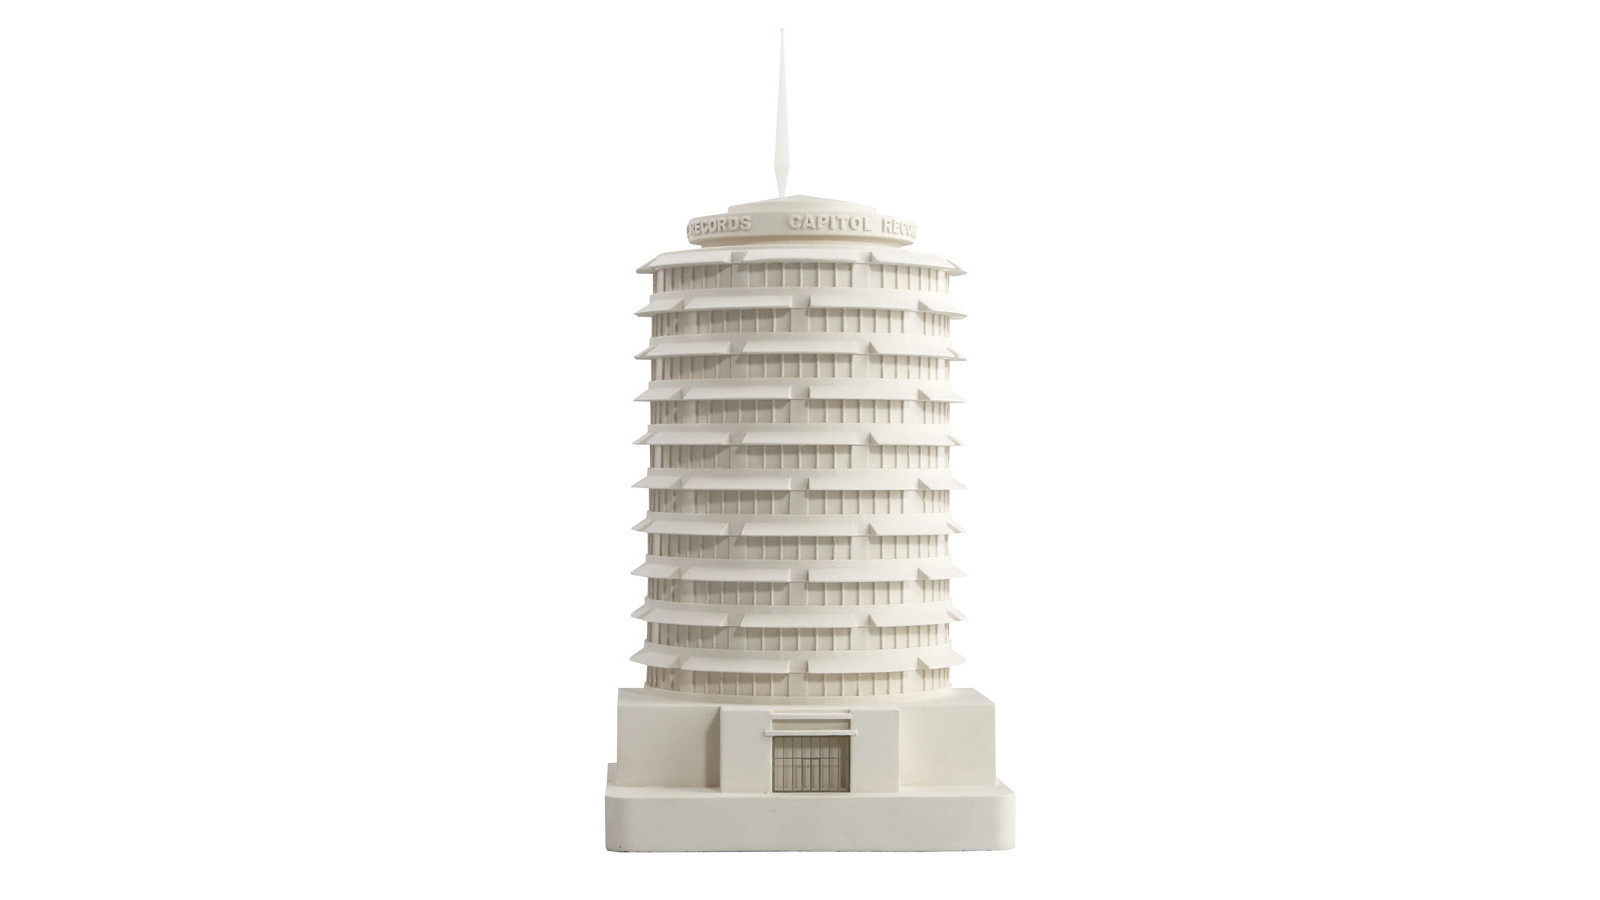 Capitol Records Building architectural modelCredit: Chisel and Mouse